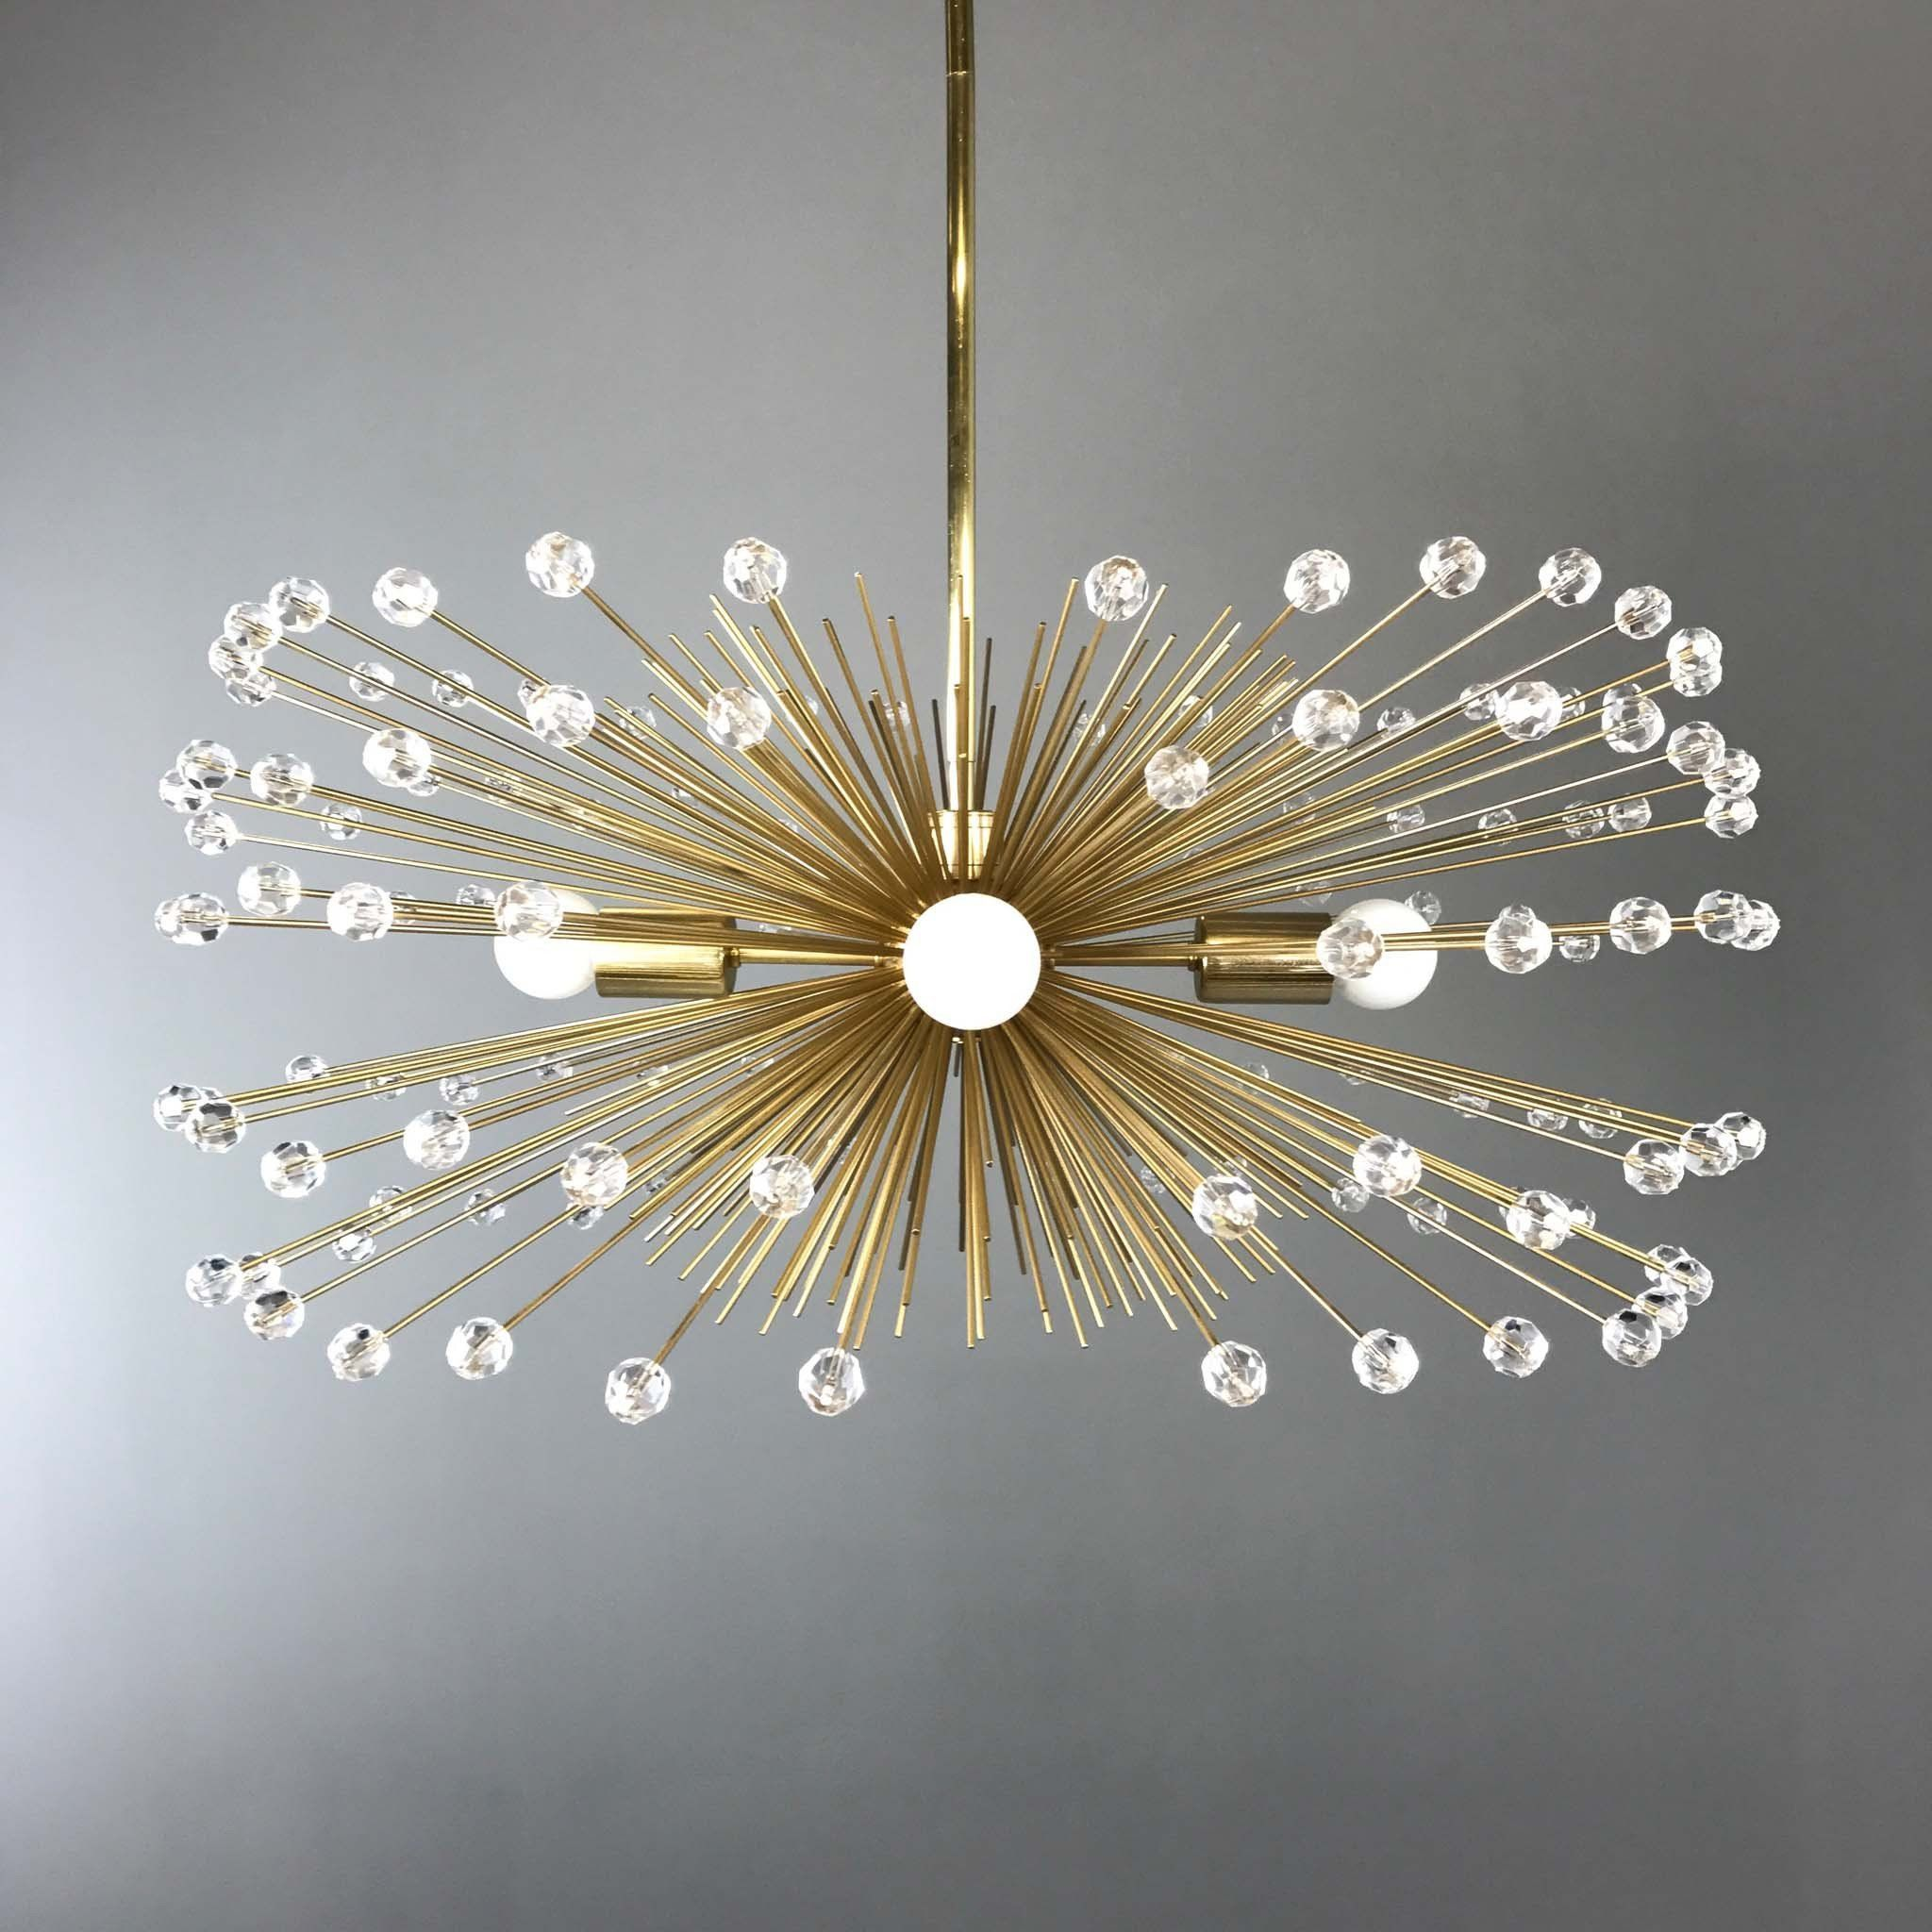 dining lighting calypso modern mid midcentury chain lantern for french globe size intended sphere mini century design black glass of kitchen traditional starburst crystorama pendant orb silver full brass cool lights light classic crystal large urchin chandelier ch chandeliers ebay affordable